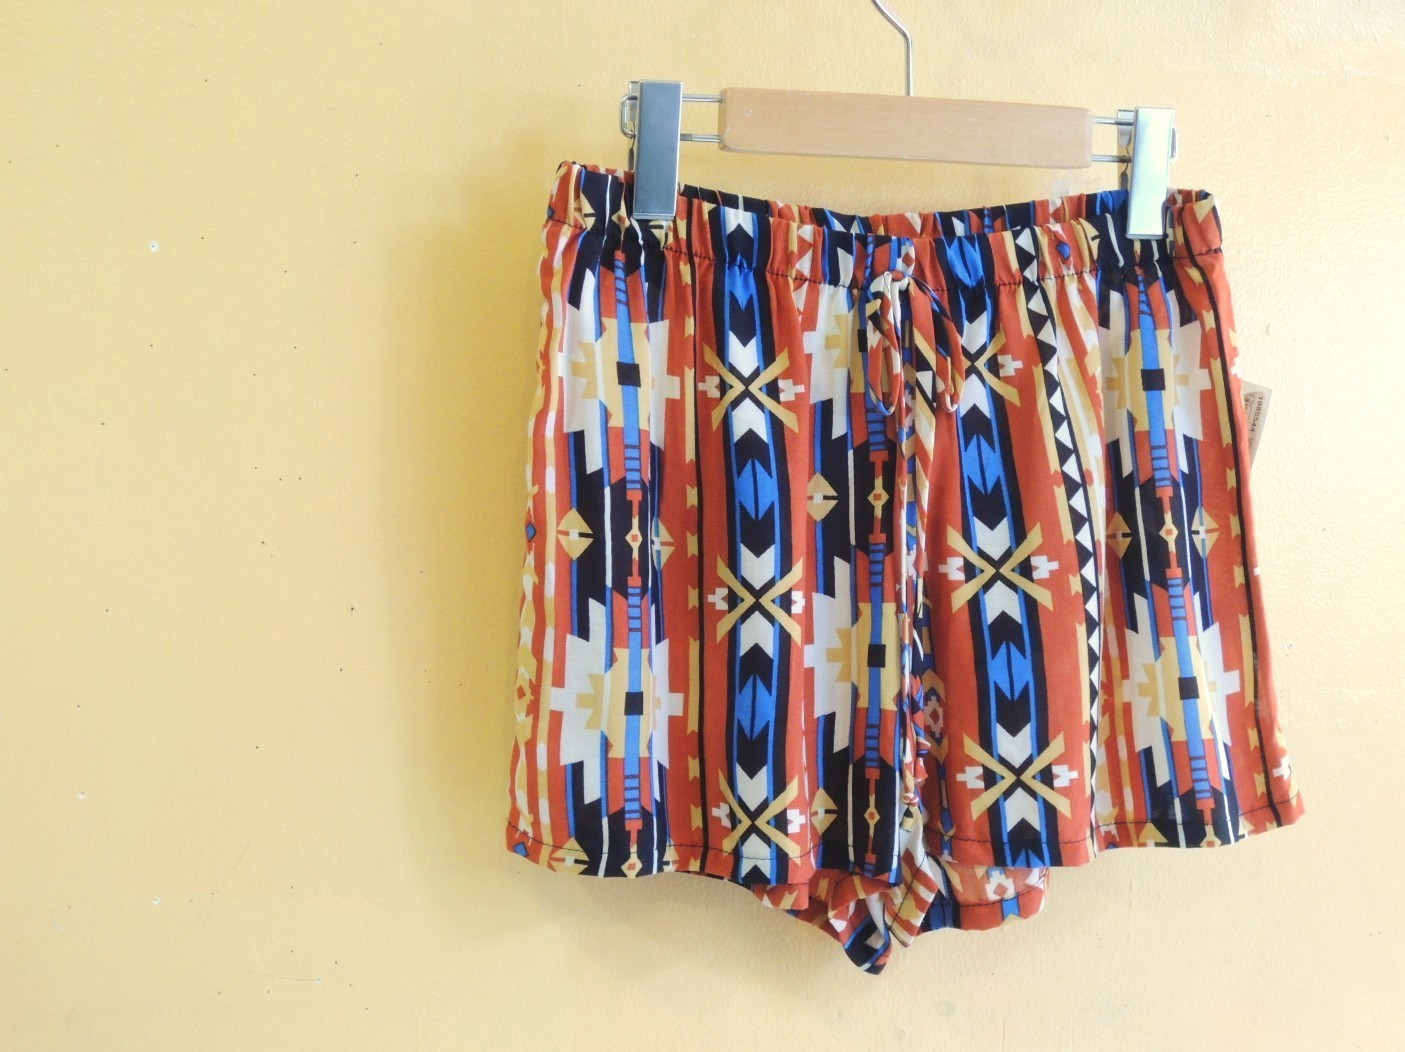 nativestripedshorts_rd05.JPG